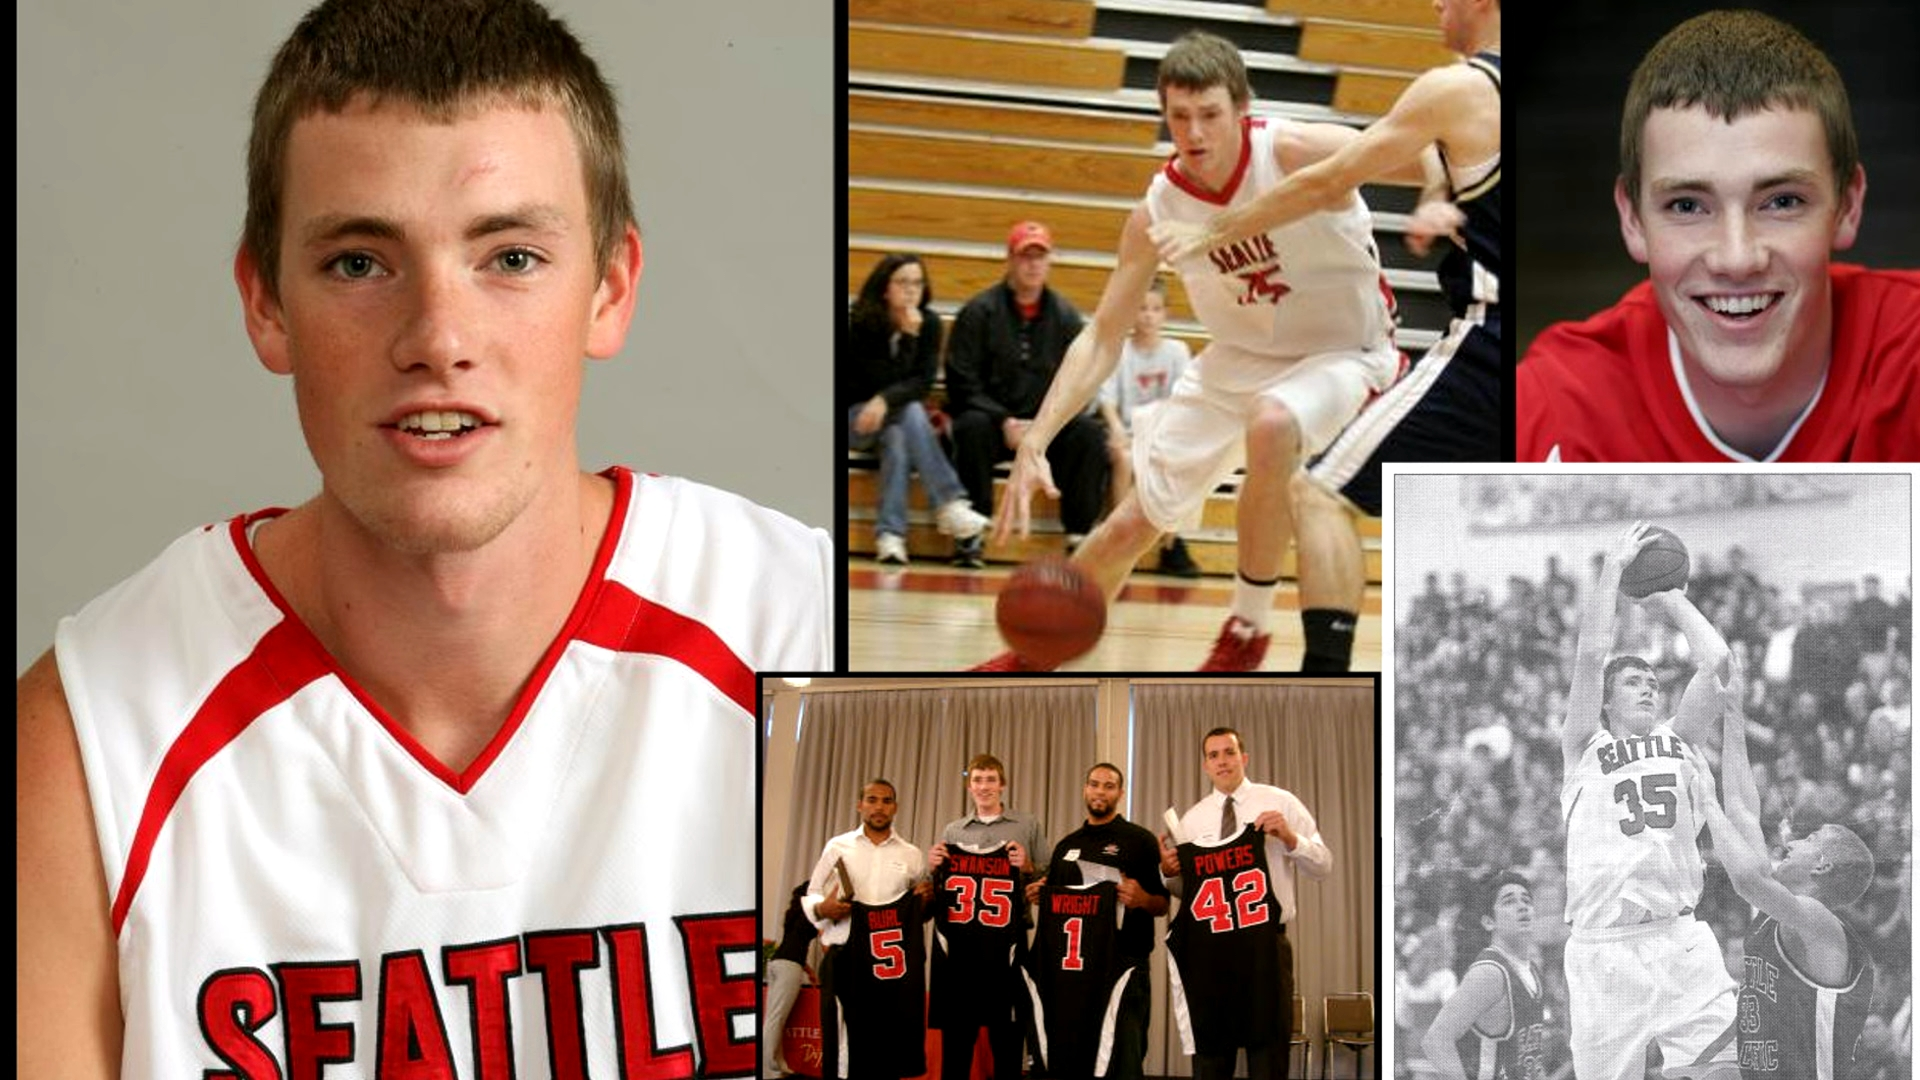 College of pictures highlighting Leigh's basketball accomplishments